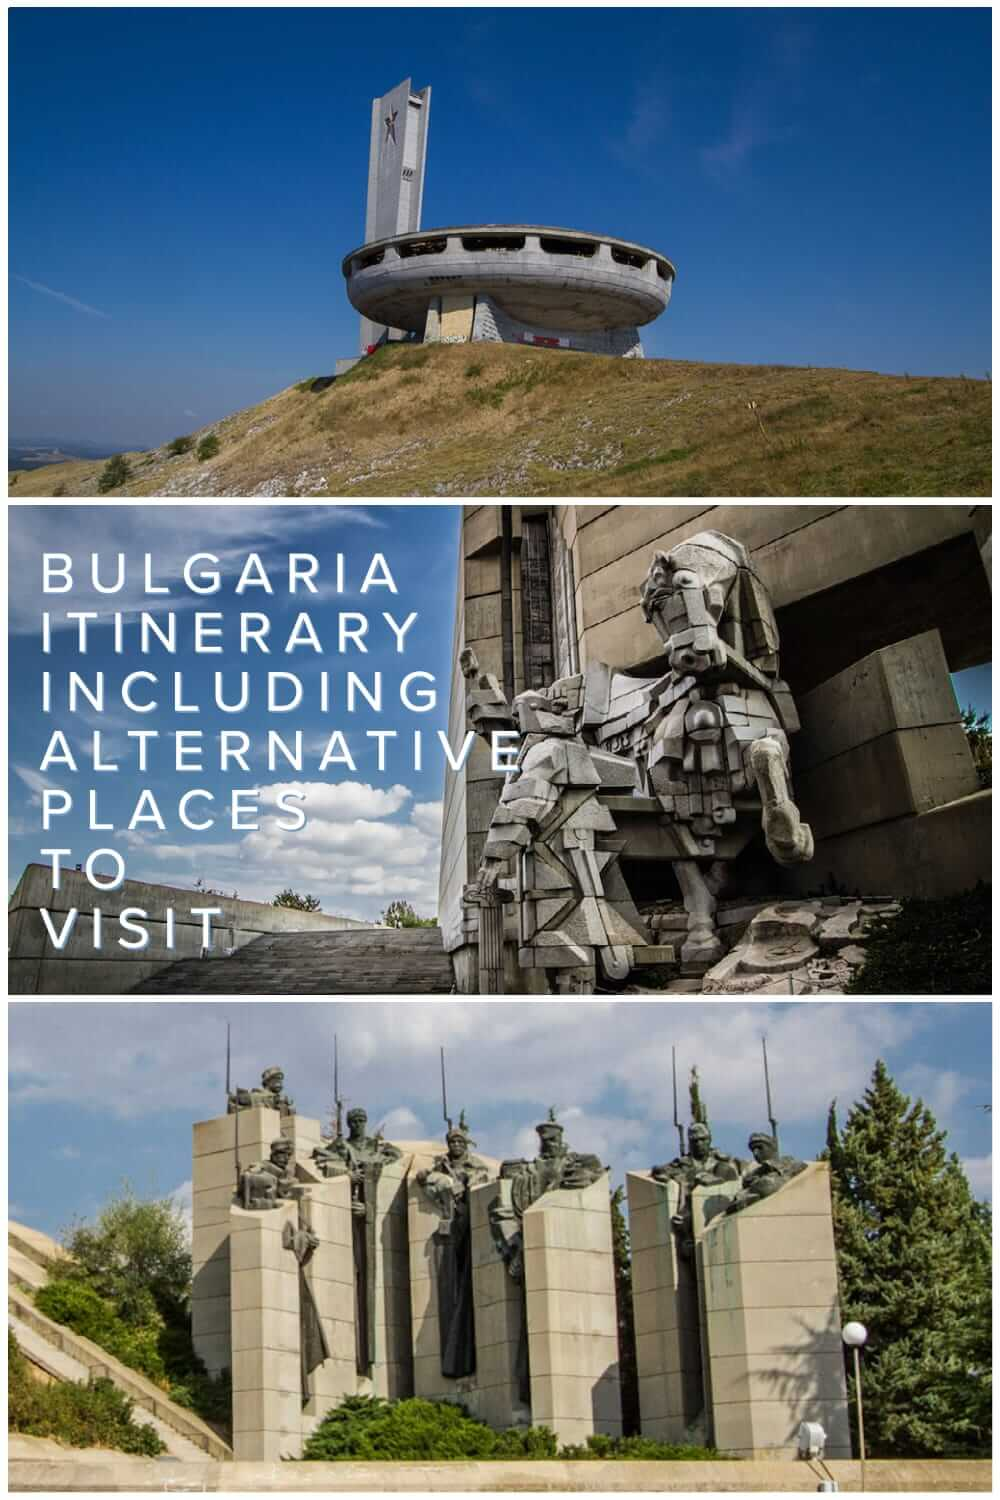 Comprehensive Bulgaria itinerary for backpackers and independent travellers to Bulgaria. What to see in Bulgaria in a 2 to 3 weeks #travel #backpacking #travelplanning #Balkans #alternative